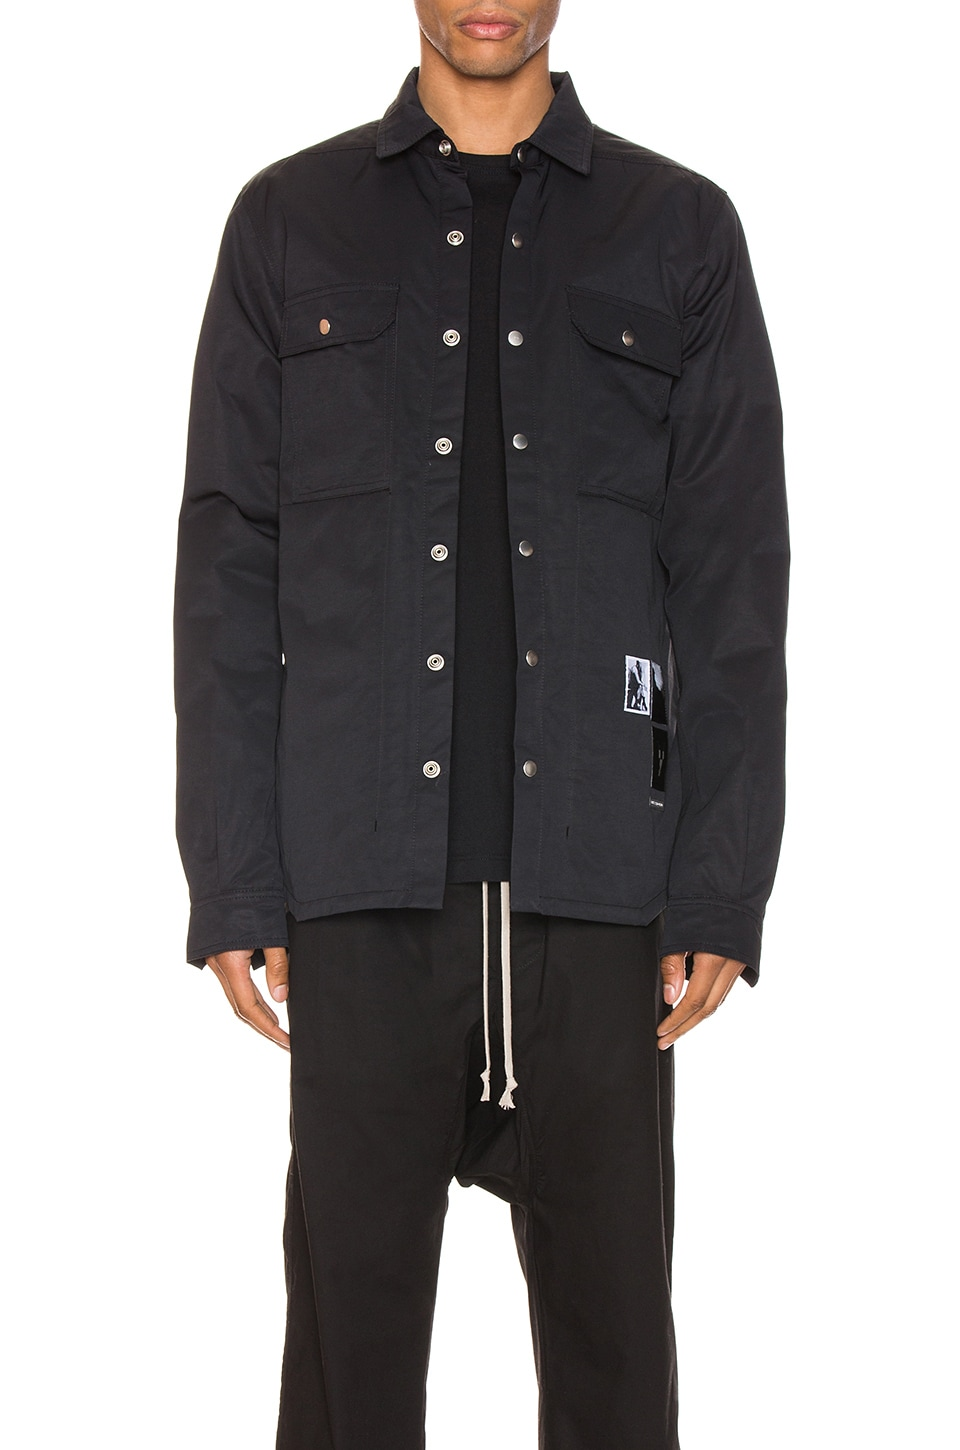 DRKSHDW by Rick Owens Outershirt in Black